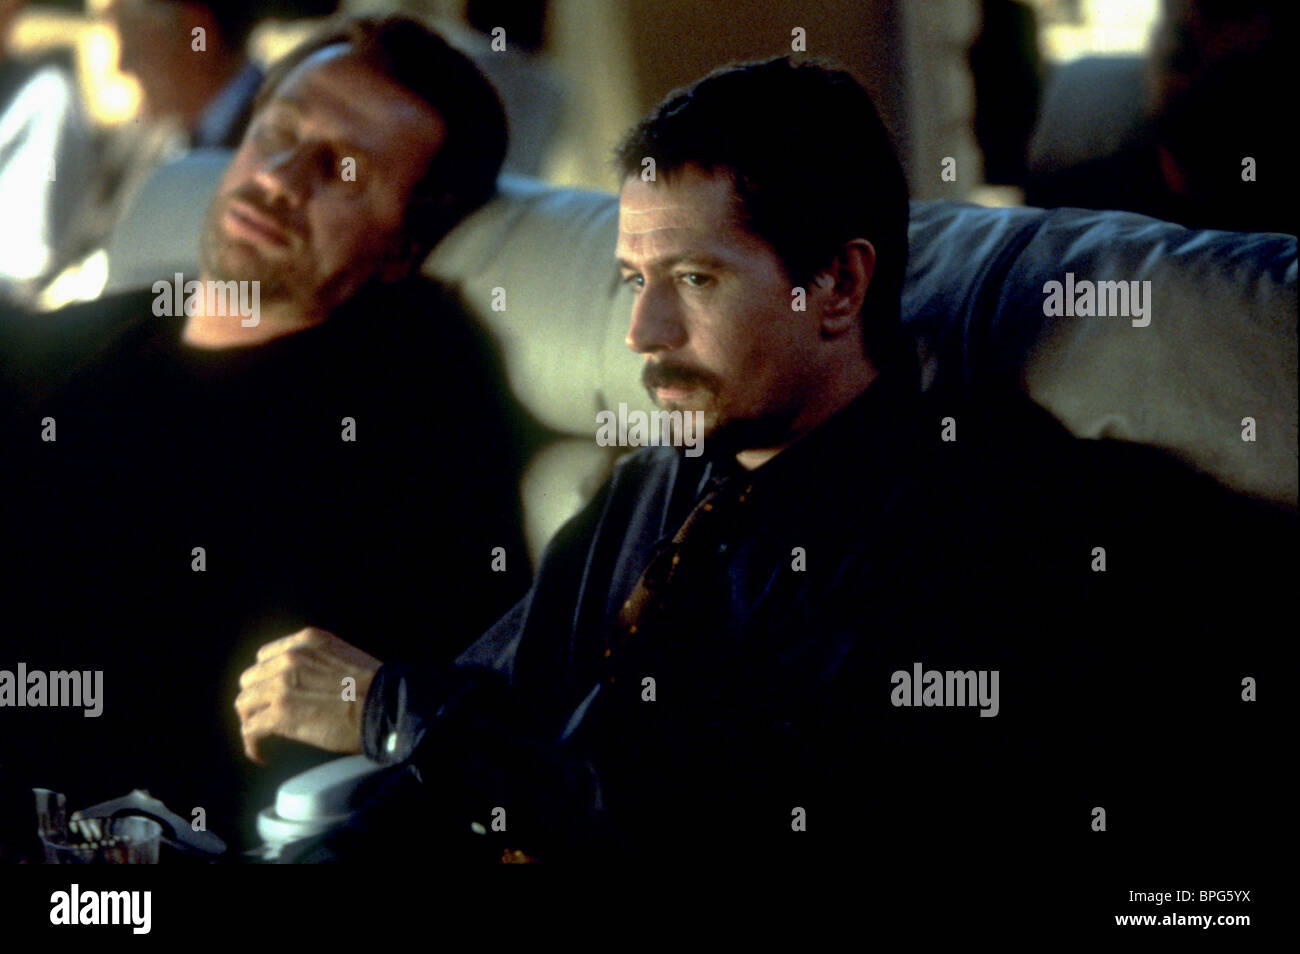 GARY OLDMAN AIR FORCE ONE (1997) - Stock Image